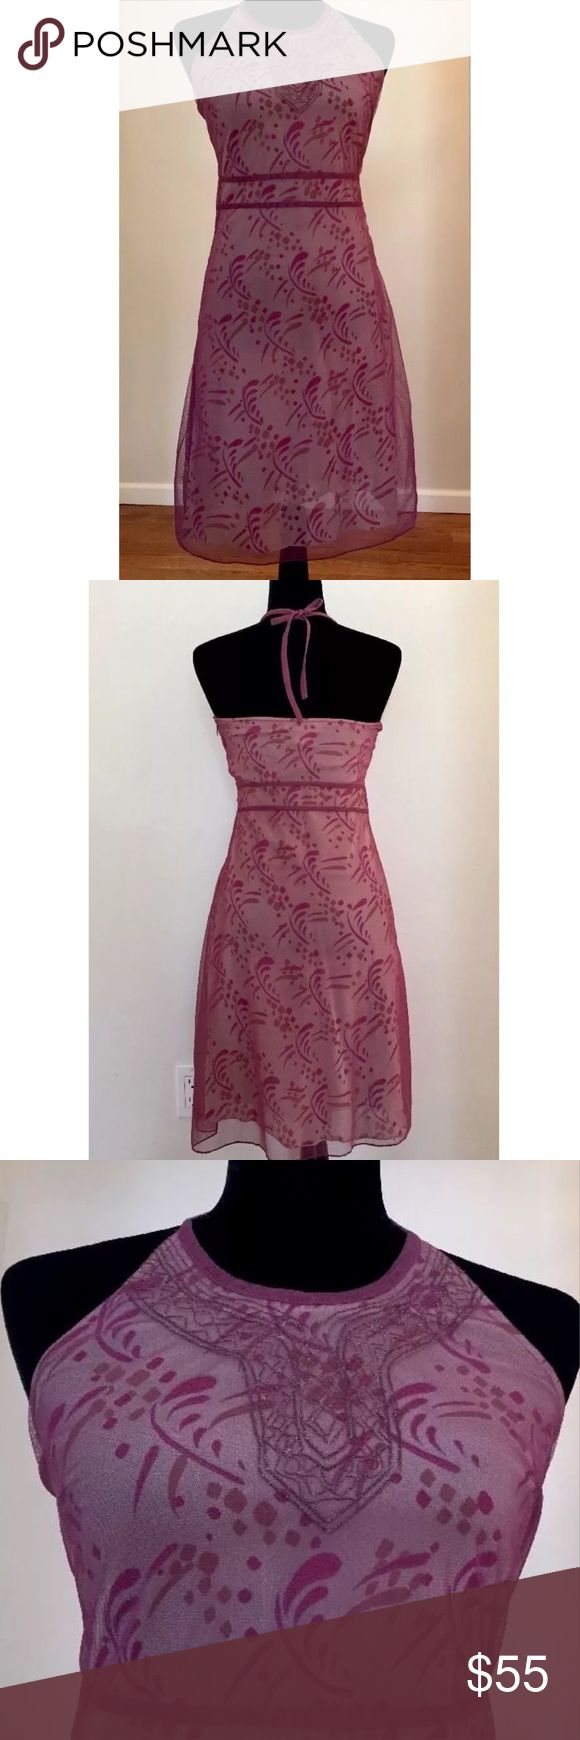 """FREE PEOPLE SHEER HALTER BOHO FESTIVAL DRESS NEW WITHOUT TAGS, EXCELLENT COND, PINK & PURPLE, SHEER FABRIC OVER A PATTERNED SLIP, LINING FOR A OVERALL COVERAGE, GOLD TONE EMBROIDERY, Bust 12"""", armpit to armpit, Waist 13"""", laying flat Length 29"""", armpit to hemline. Free People Dresses Midi"""